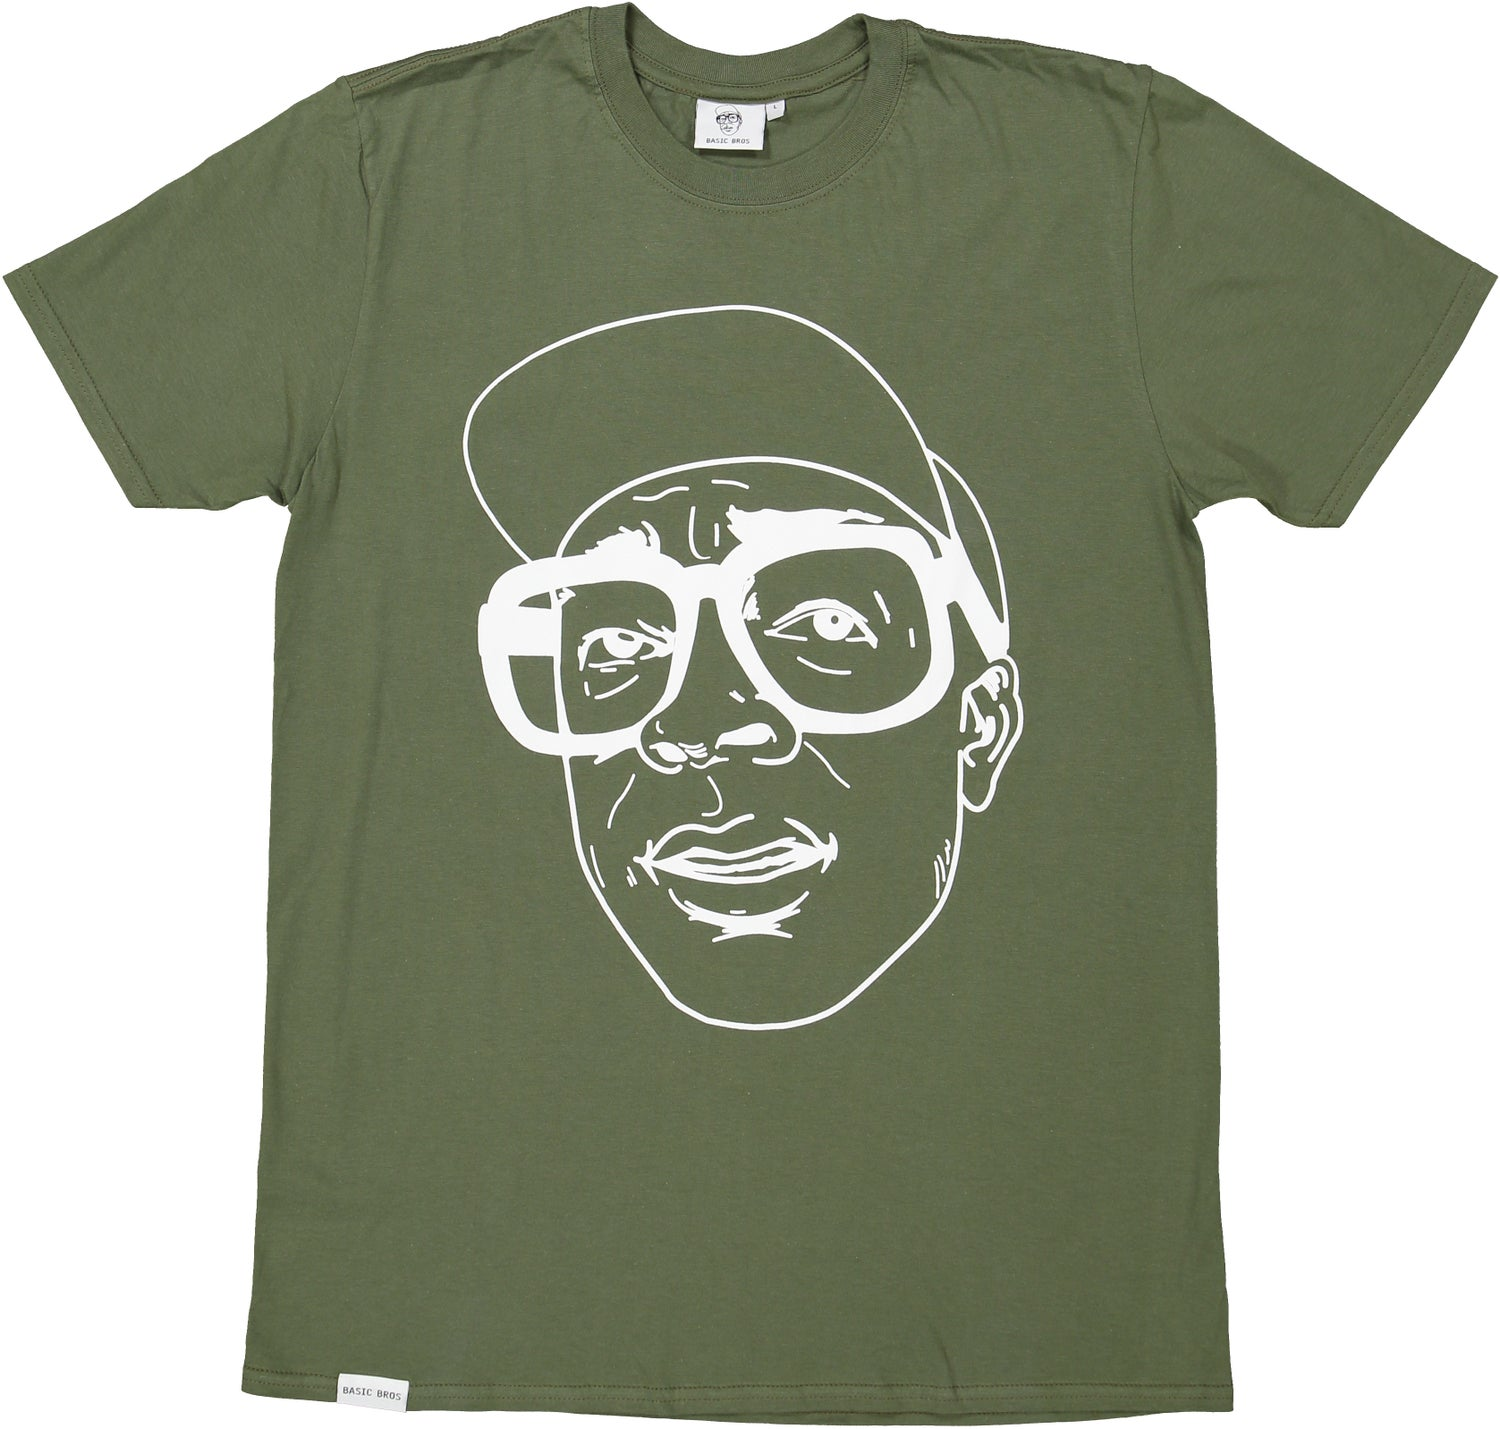 Image of T-SHIRT FACE Olive